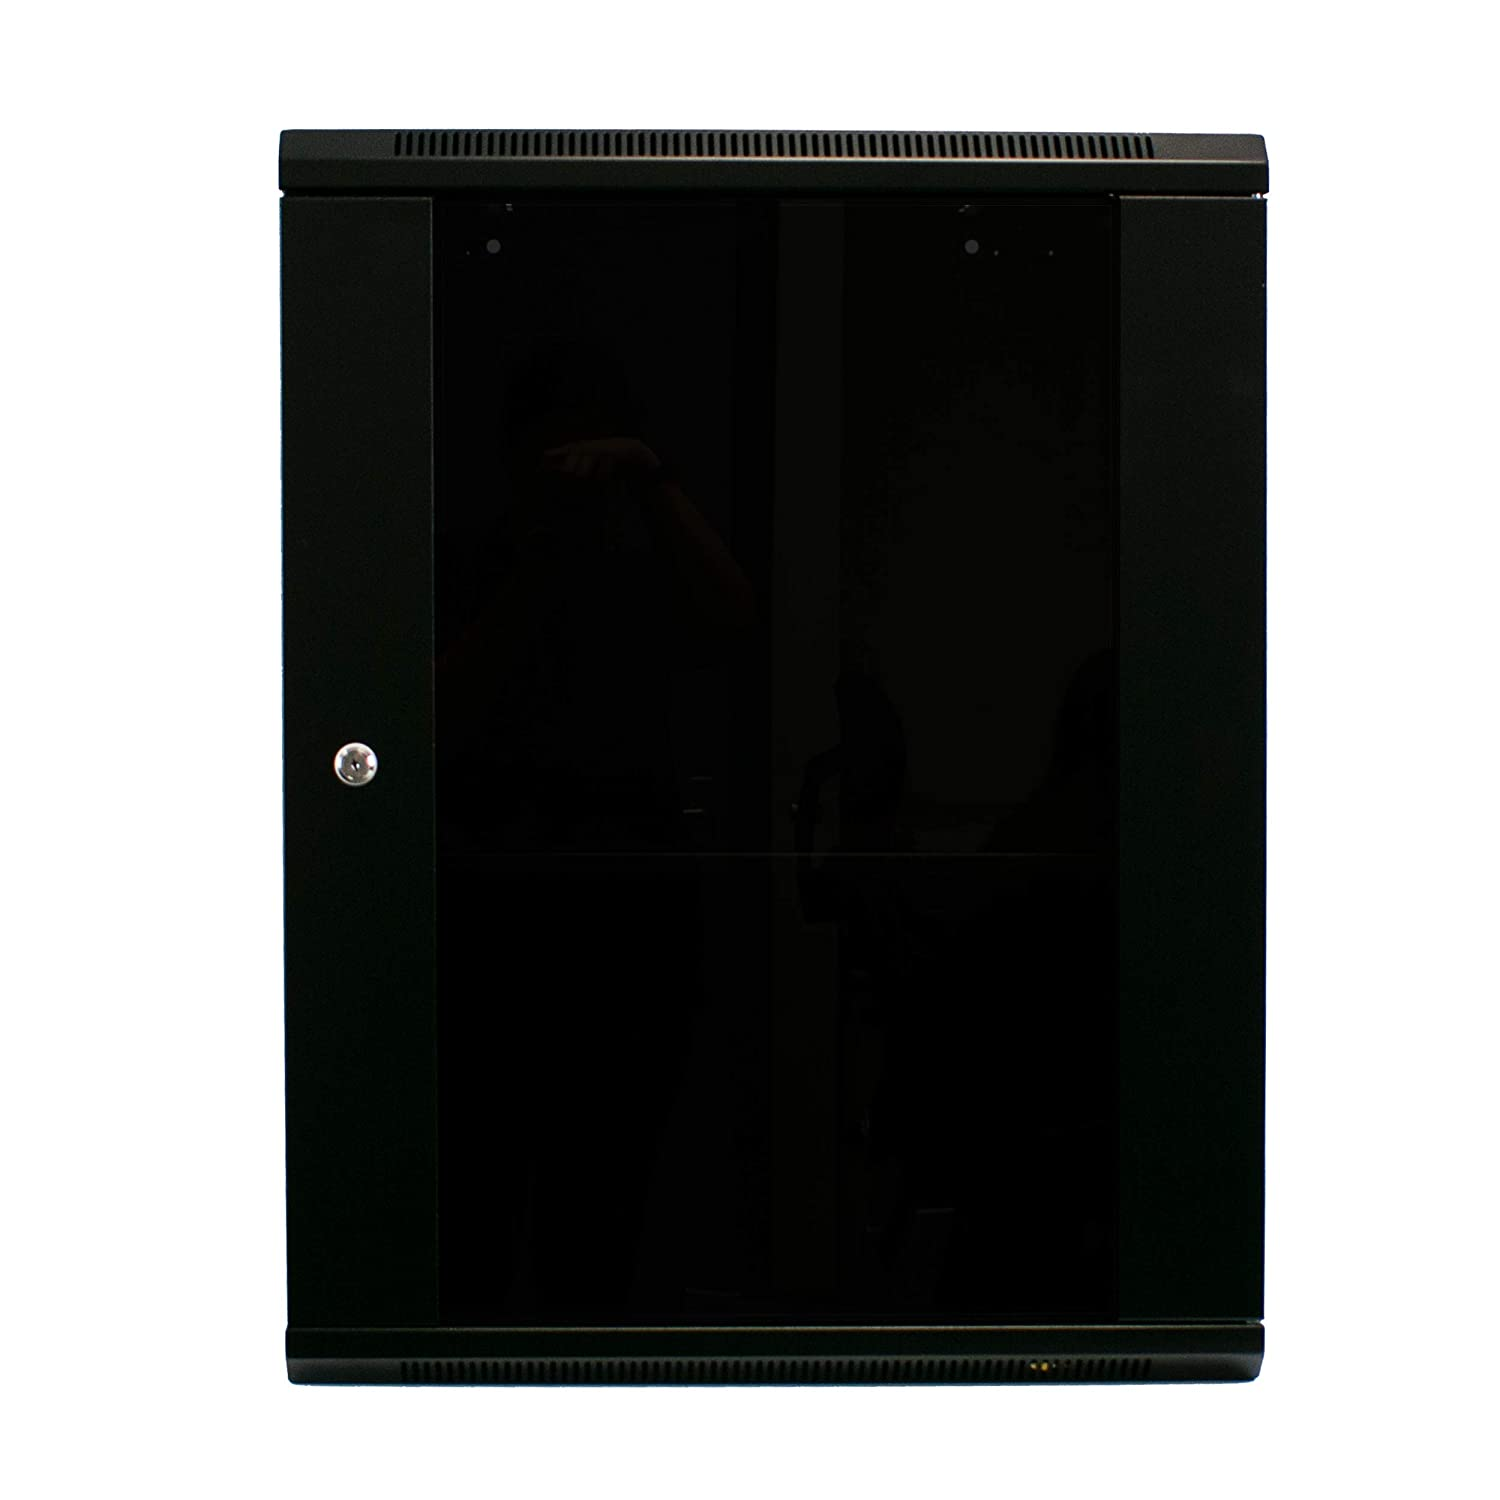 I-CHOOSE LIMITED 15U Server Data Cabinet for Comms 450mm Deep 19-inch Rack with Vented Shelf and Lockable Glass Door